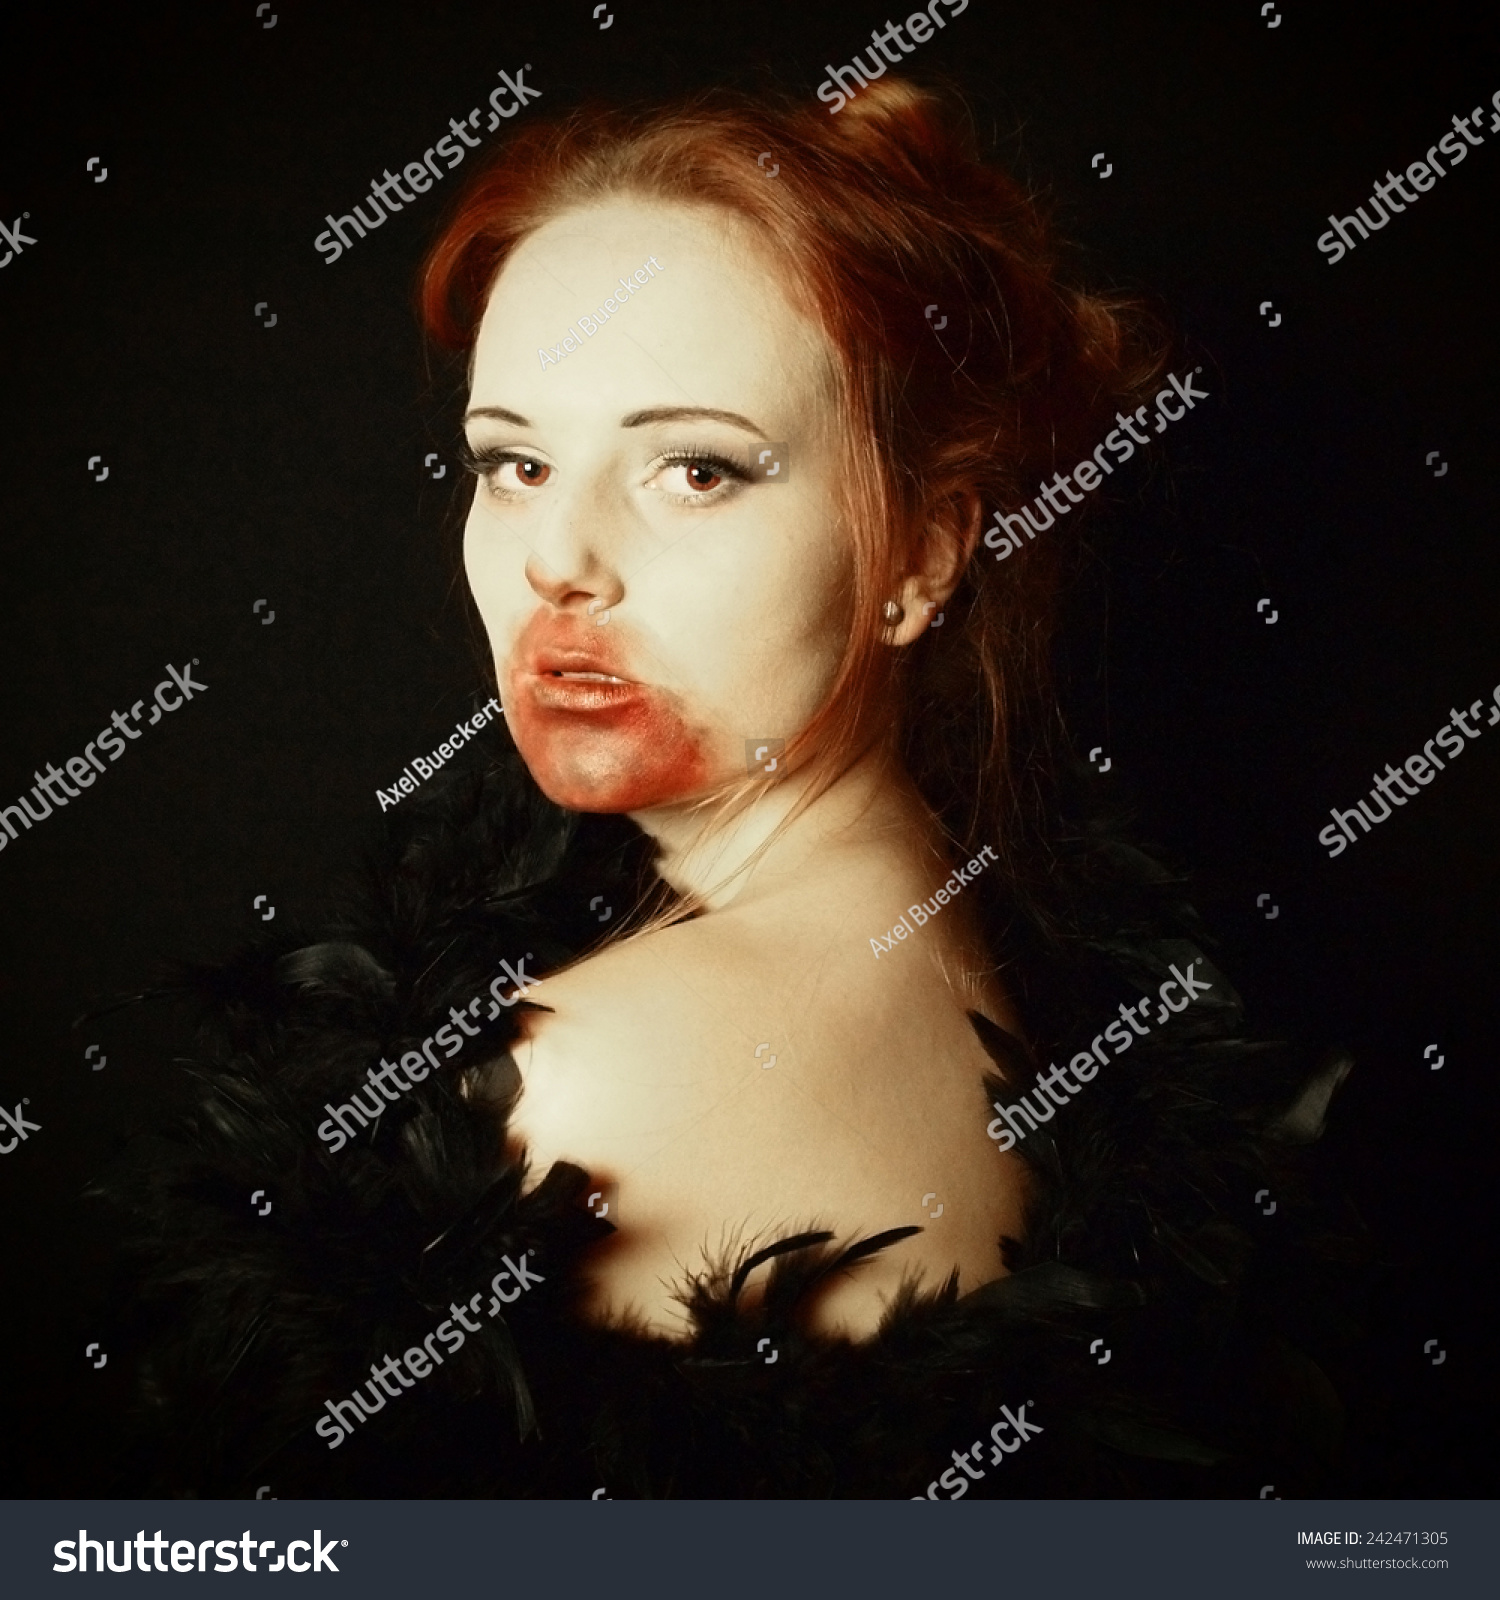 Female vampire portrayed as a glamorous vamp with art filter